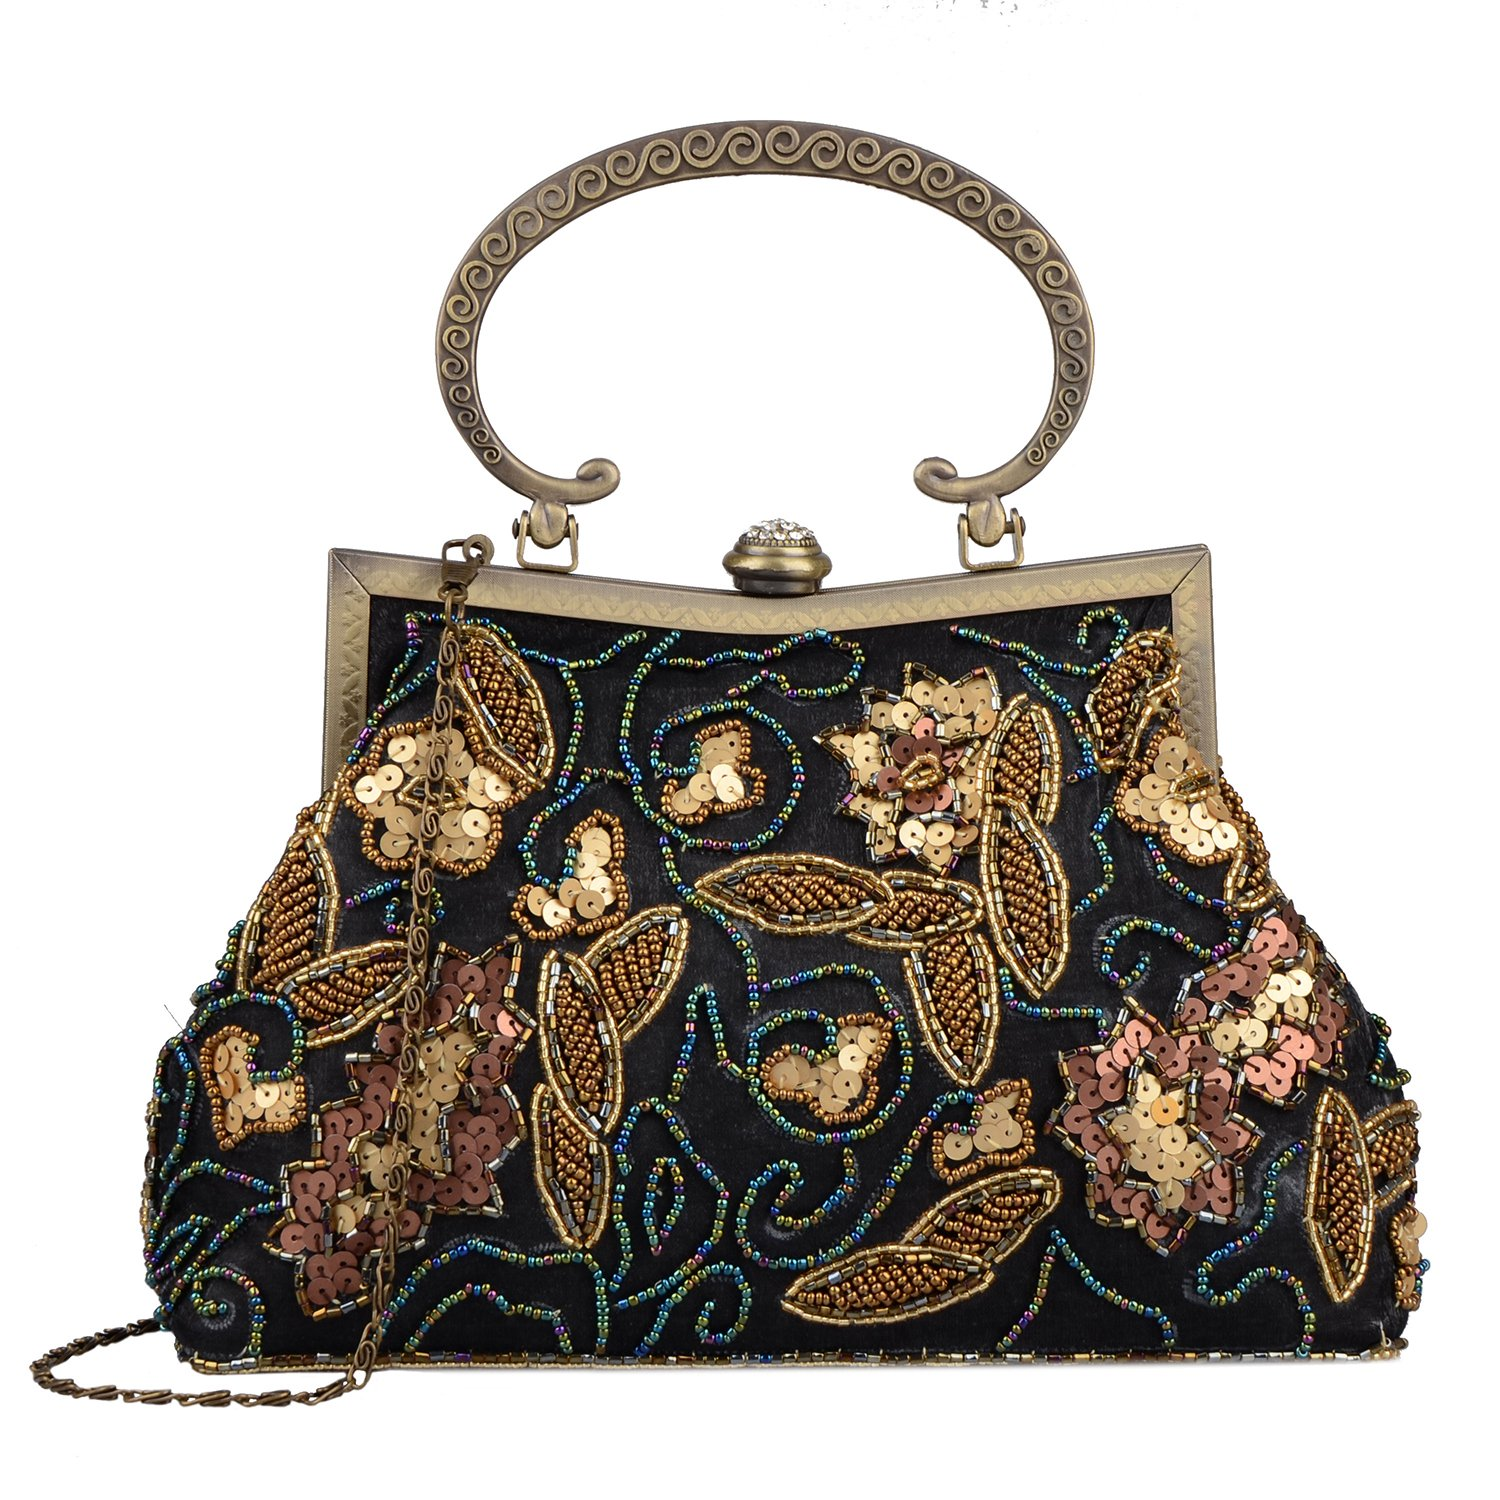 1920s Handbags, Purses, and Shopping Bag Styles Lifewish Women Vintage Sequins Beaded Evening Bag Embroidered Satin Top-handle Prom Formal Clutch $34.99 AT vintagedancer.com